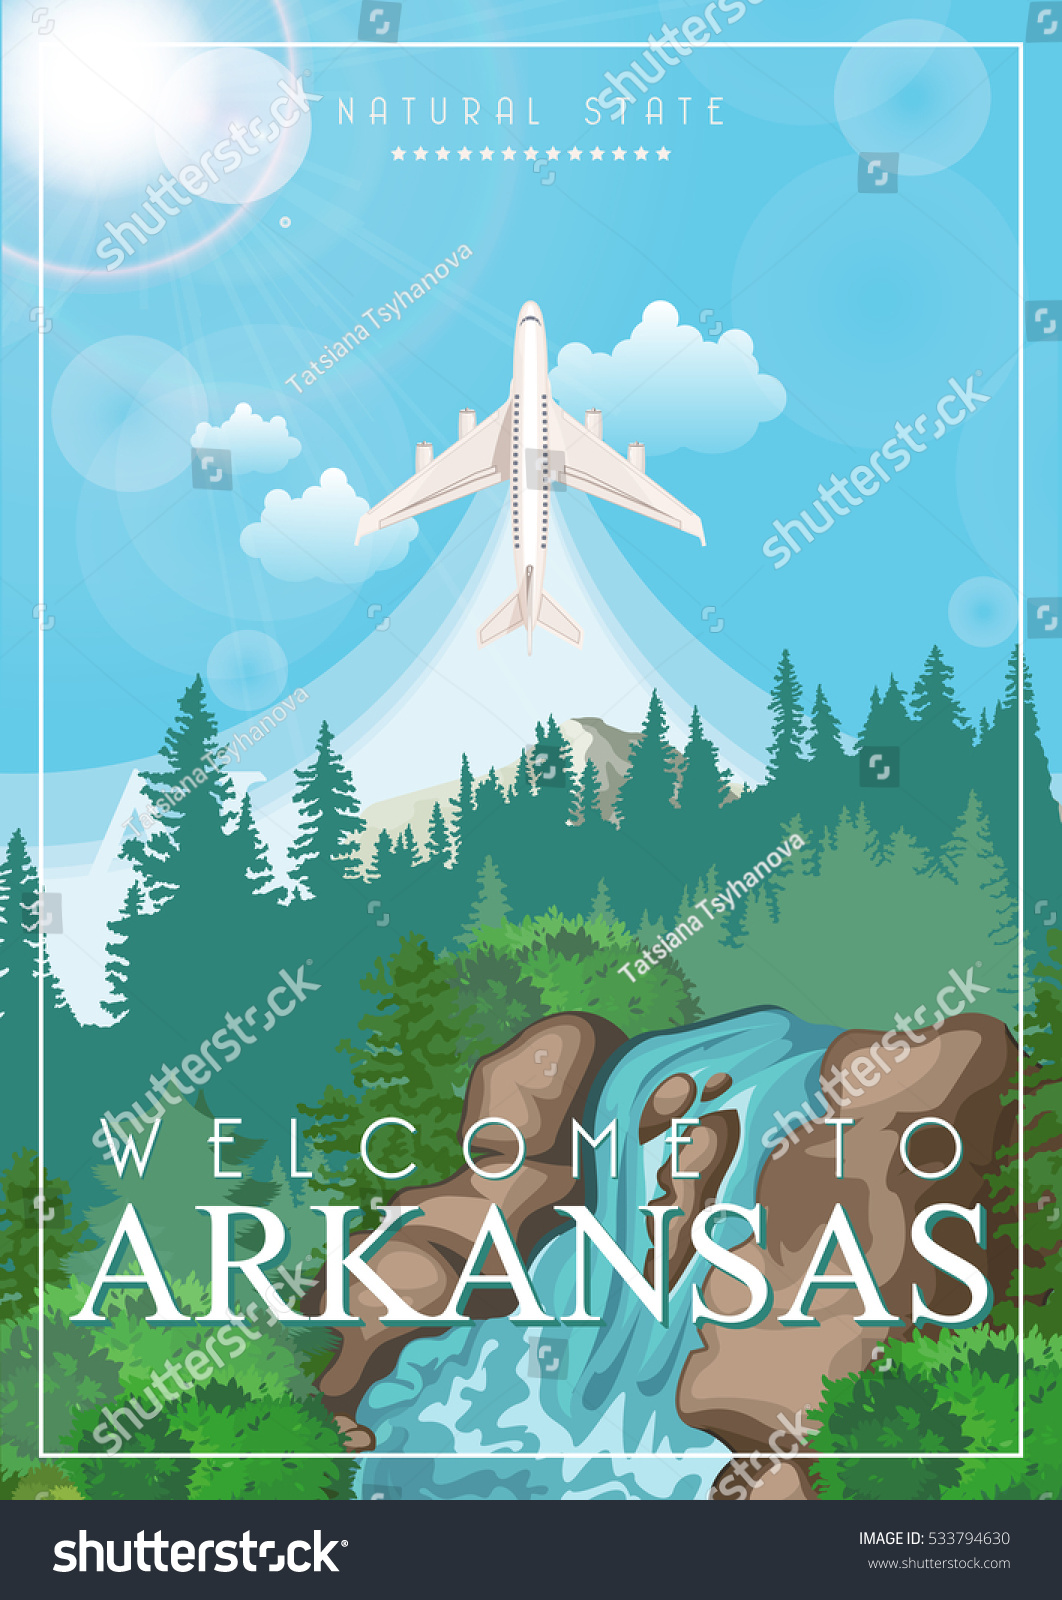 Wandposter Natur Arkansas Vector American Poster Usa Travel Stock Vector Royalty